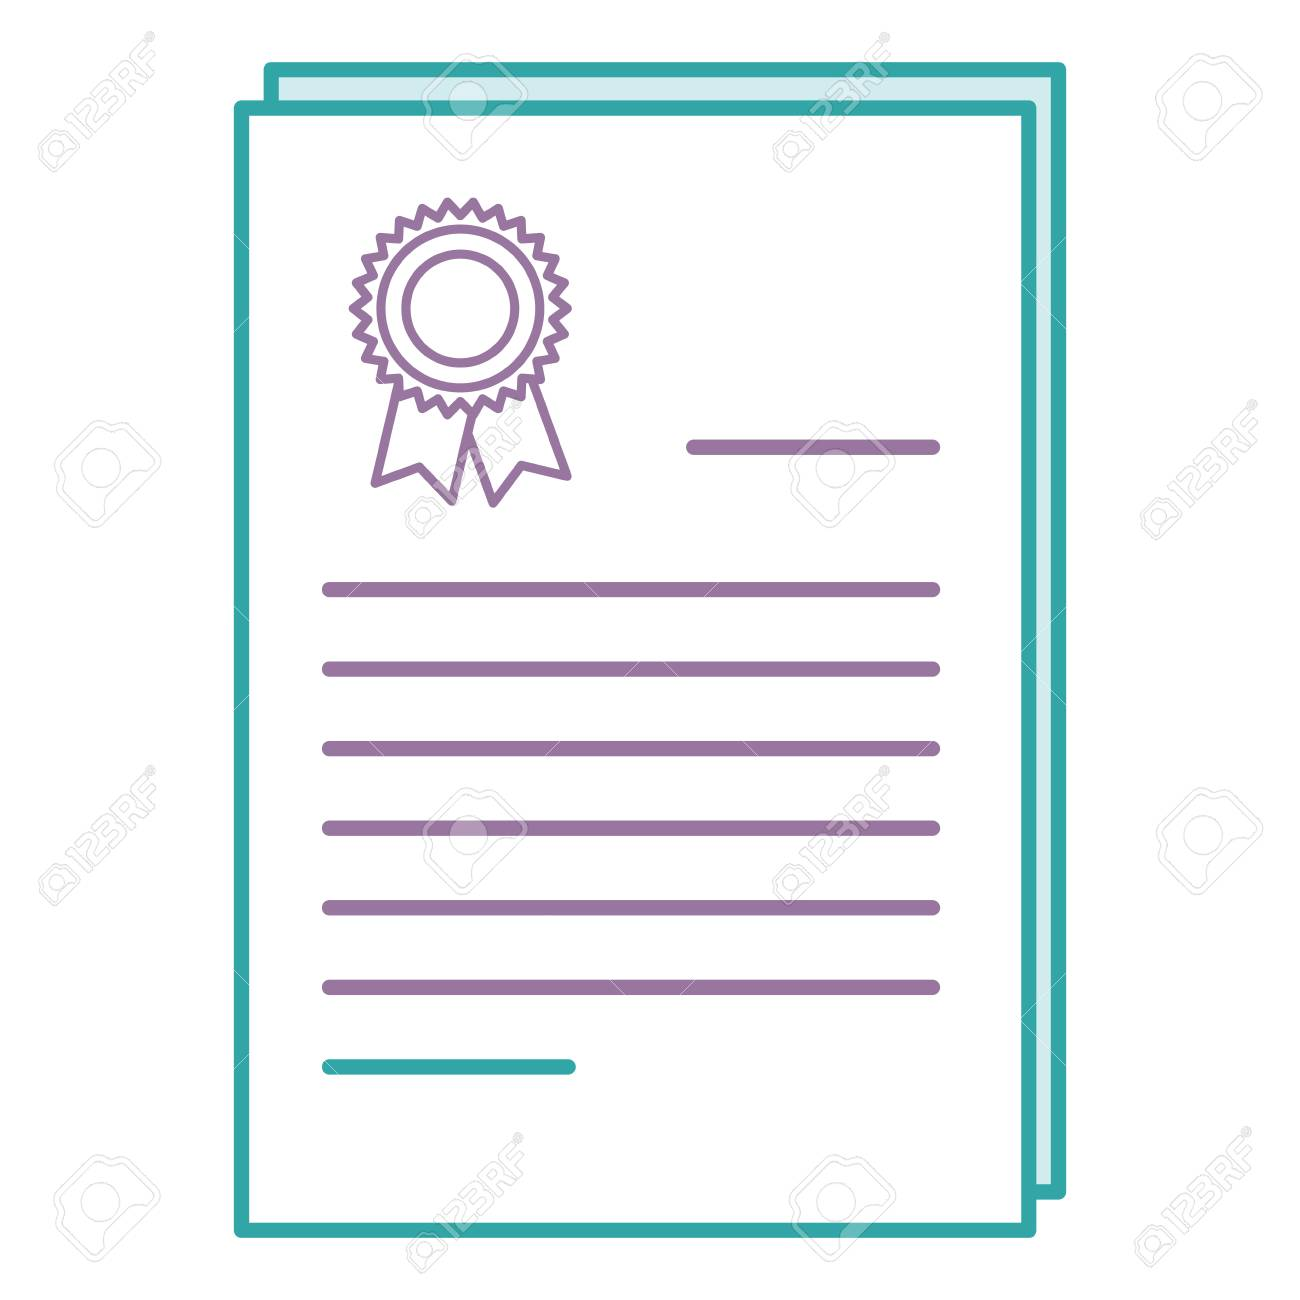 colored outline illustration of graduation diploma certificate